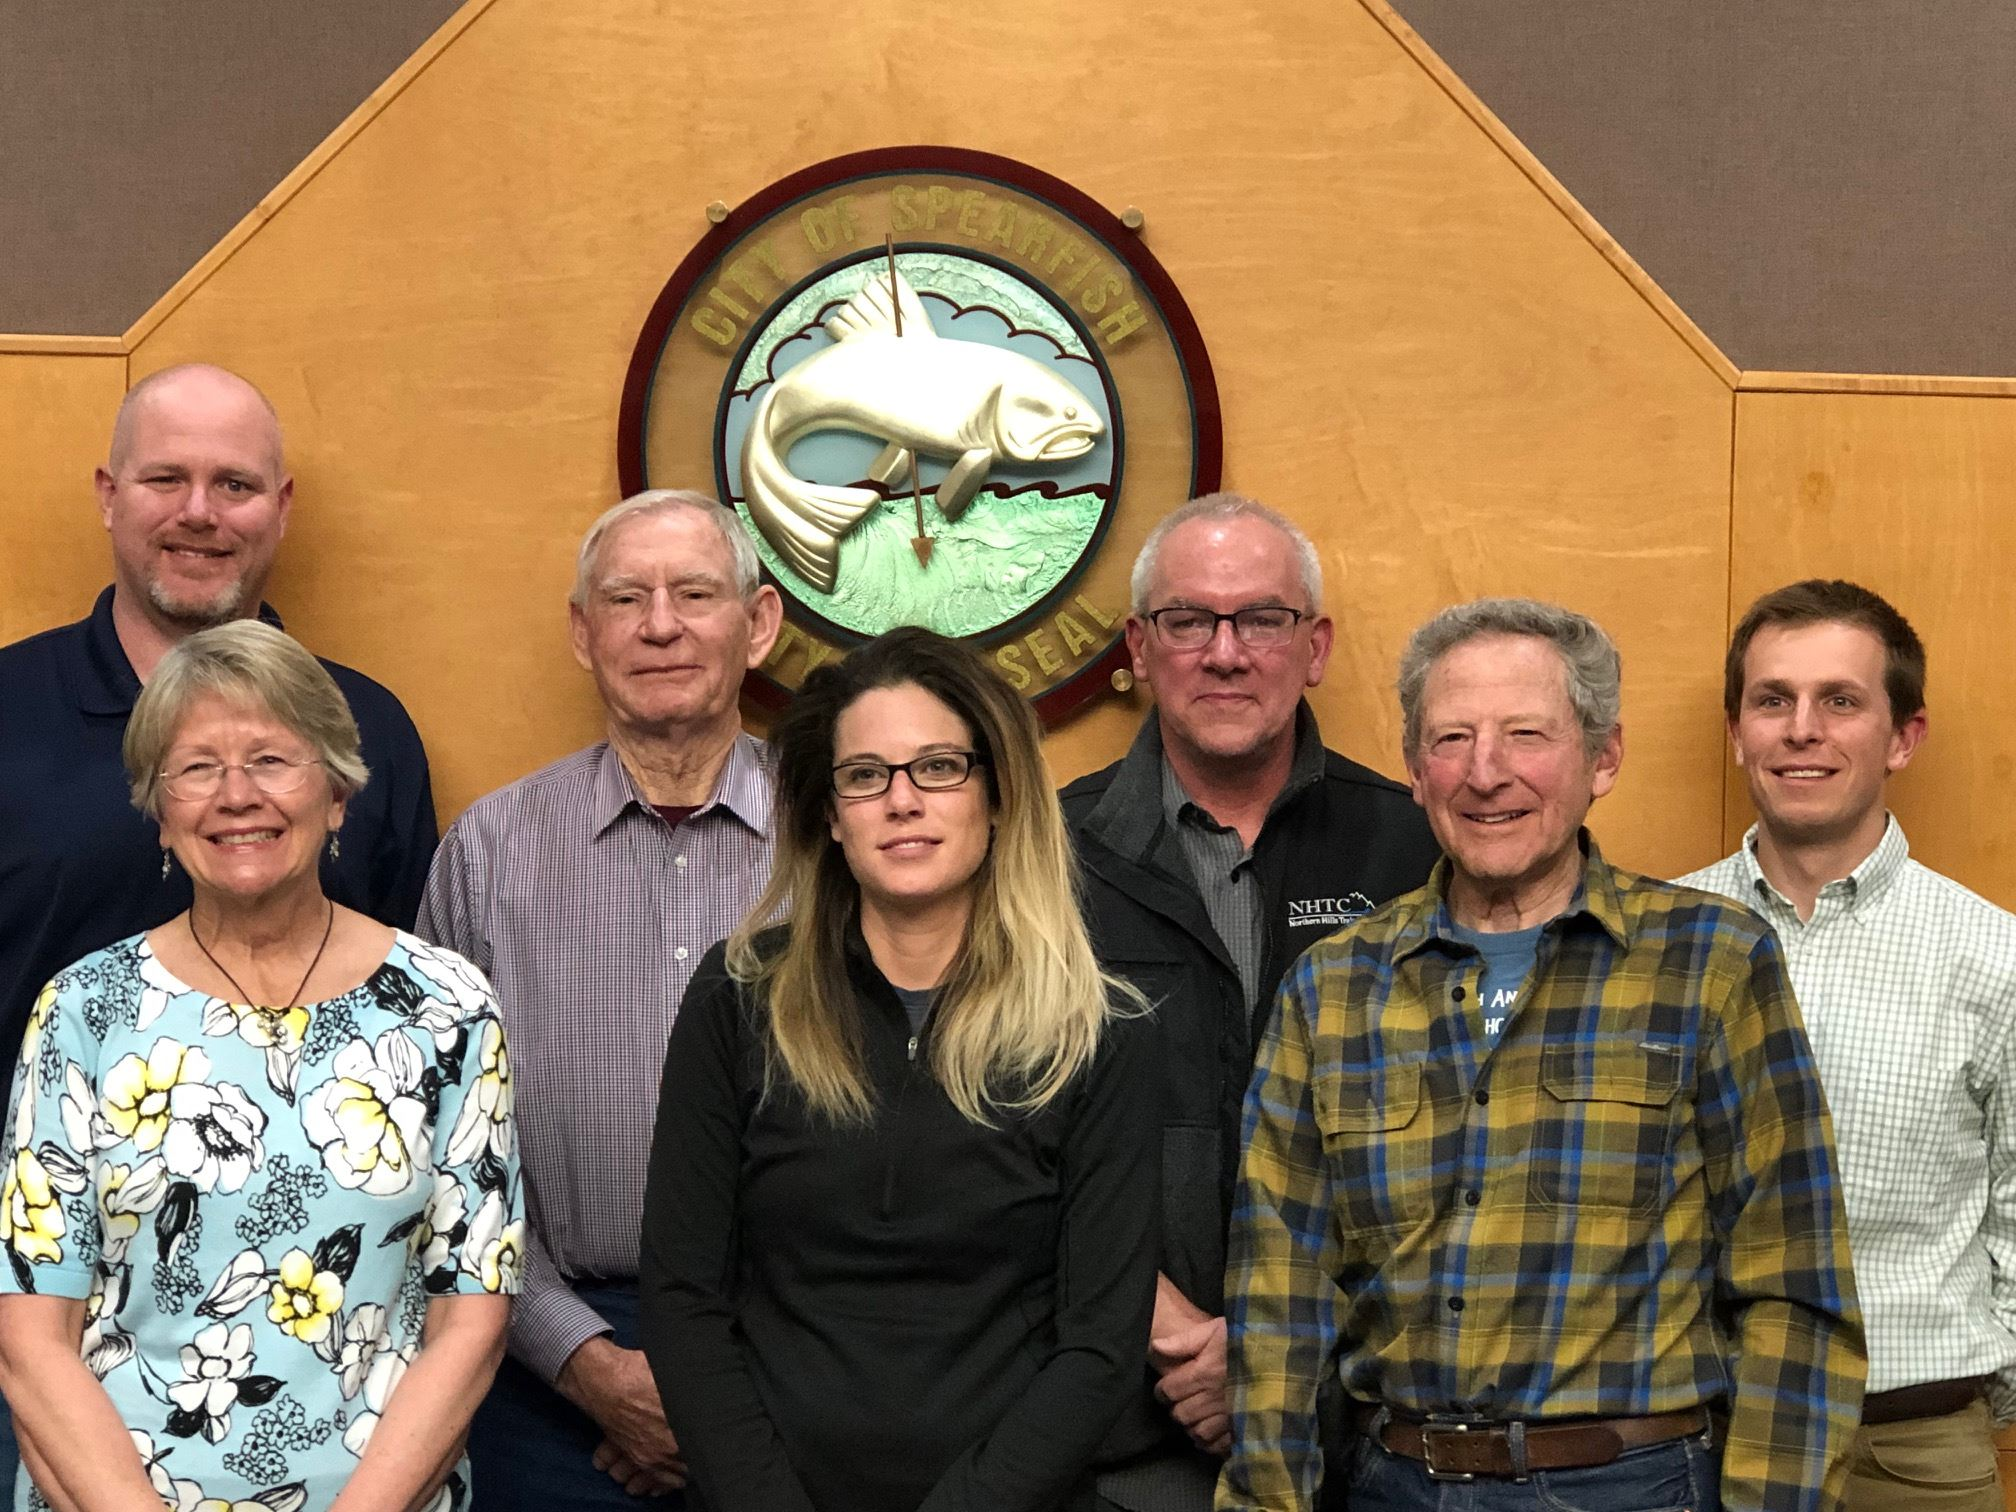 04-22-19 Group Photo of the Planning Commission